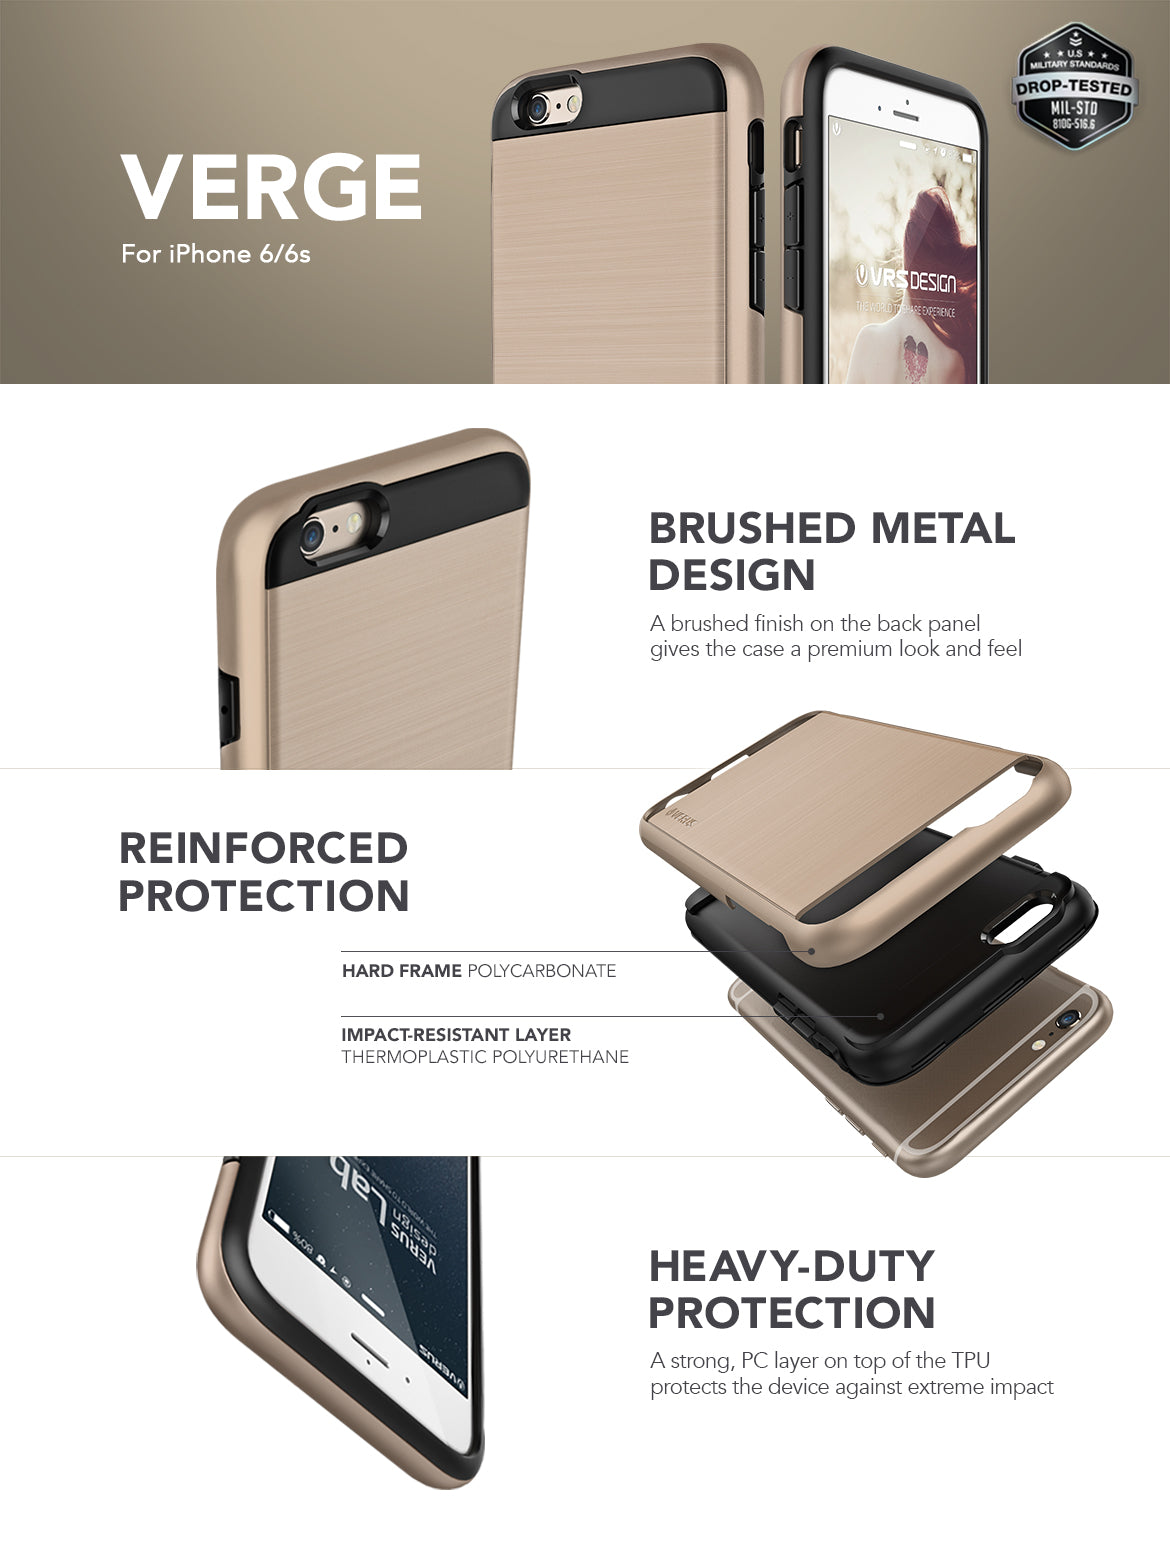 iPhone 6 / 6s_Verge